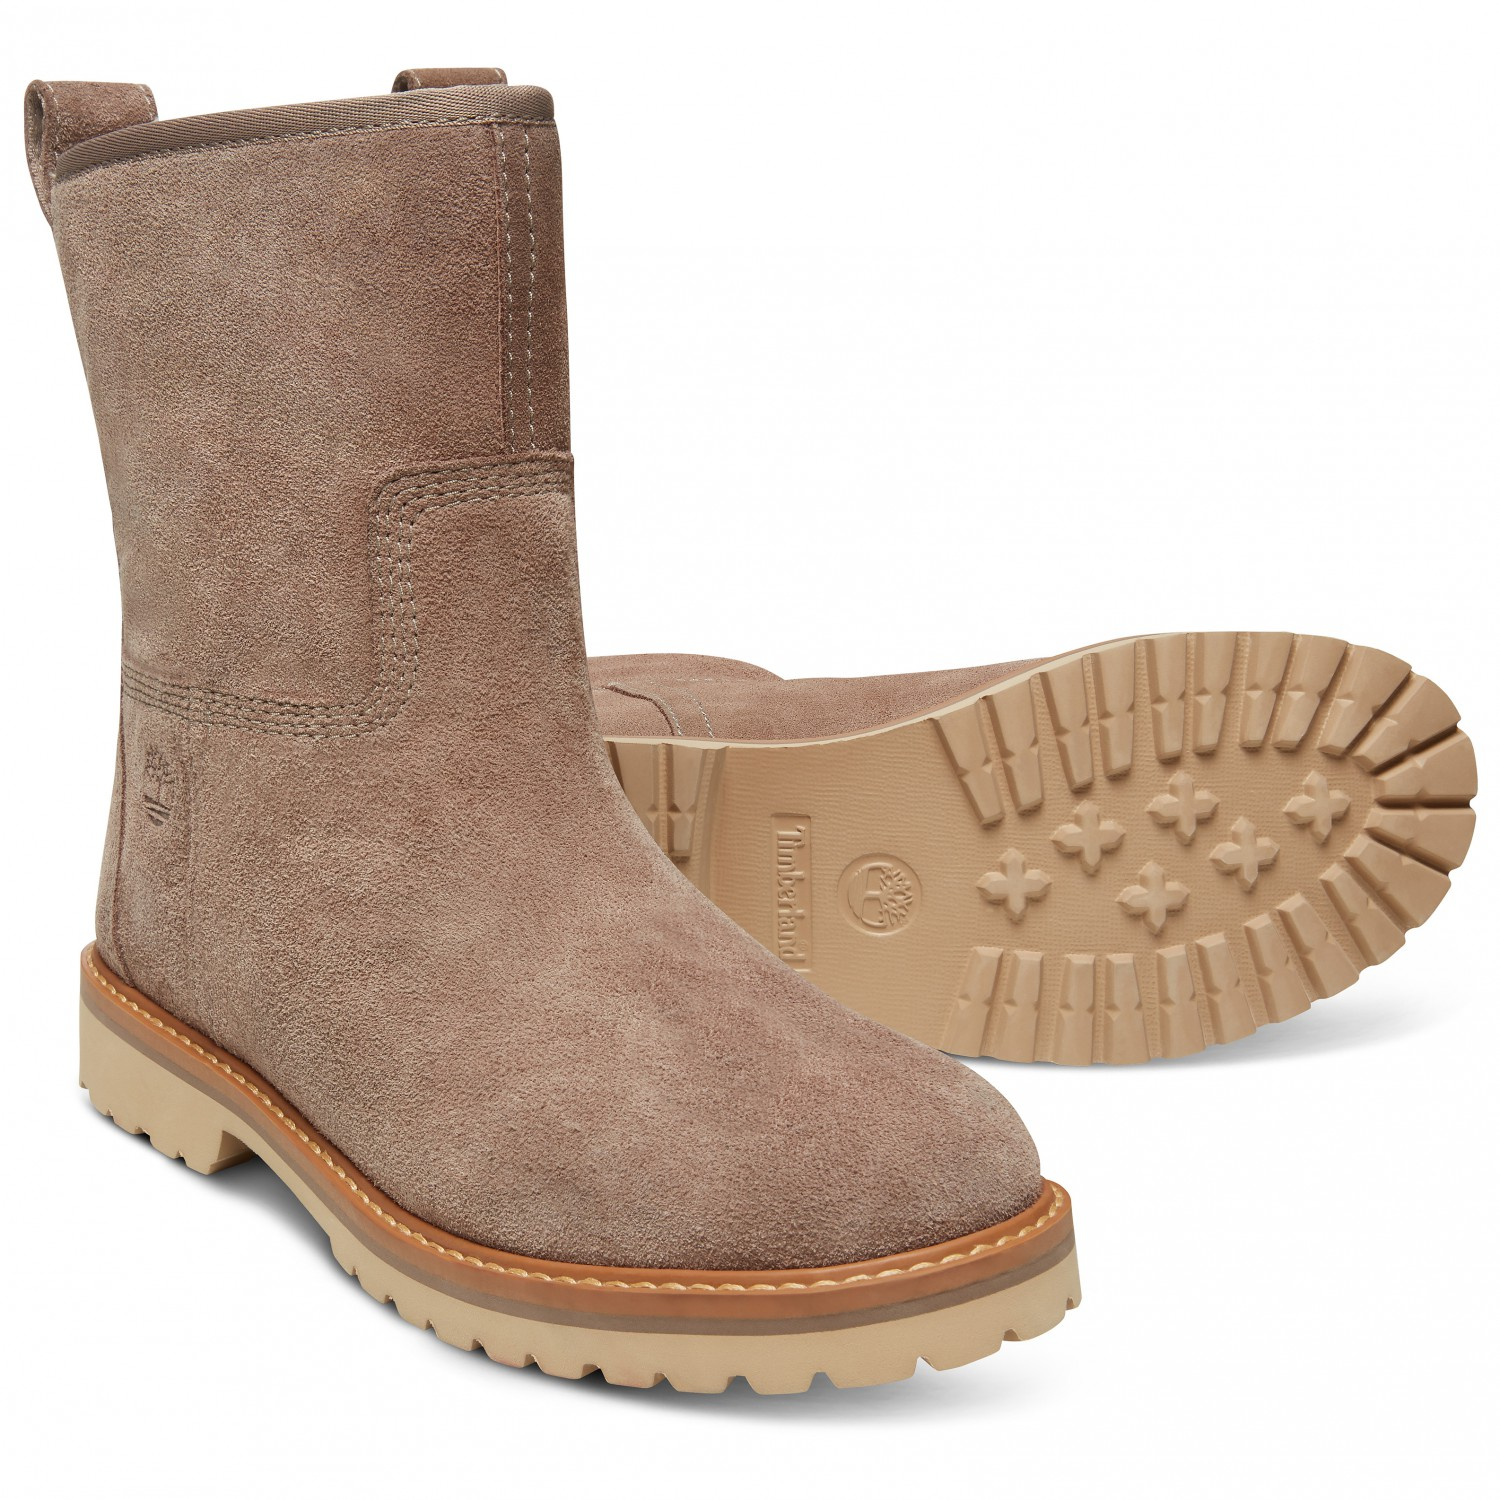 sale retailer 6a5e2 4a69d Timberland - Women's Chamonix Valley Winter - Scarpe invernali - Taupe Grey  Suede | 9,5 (US)